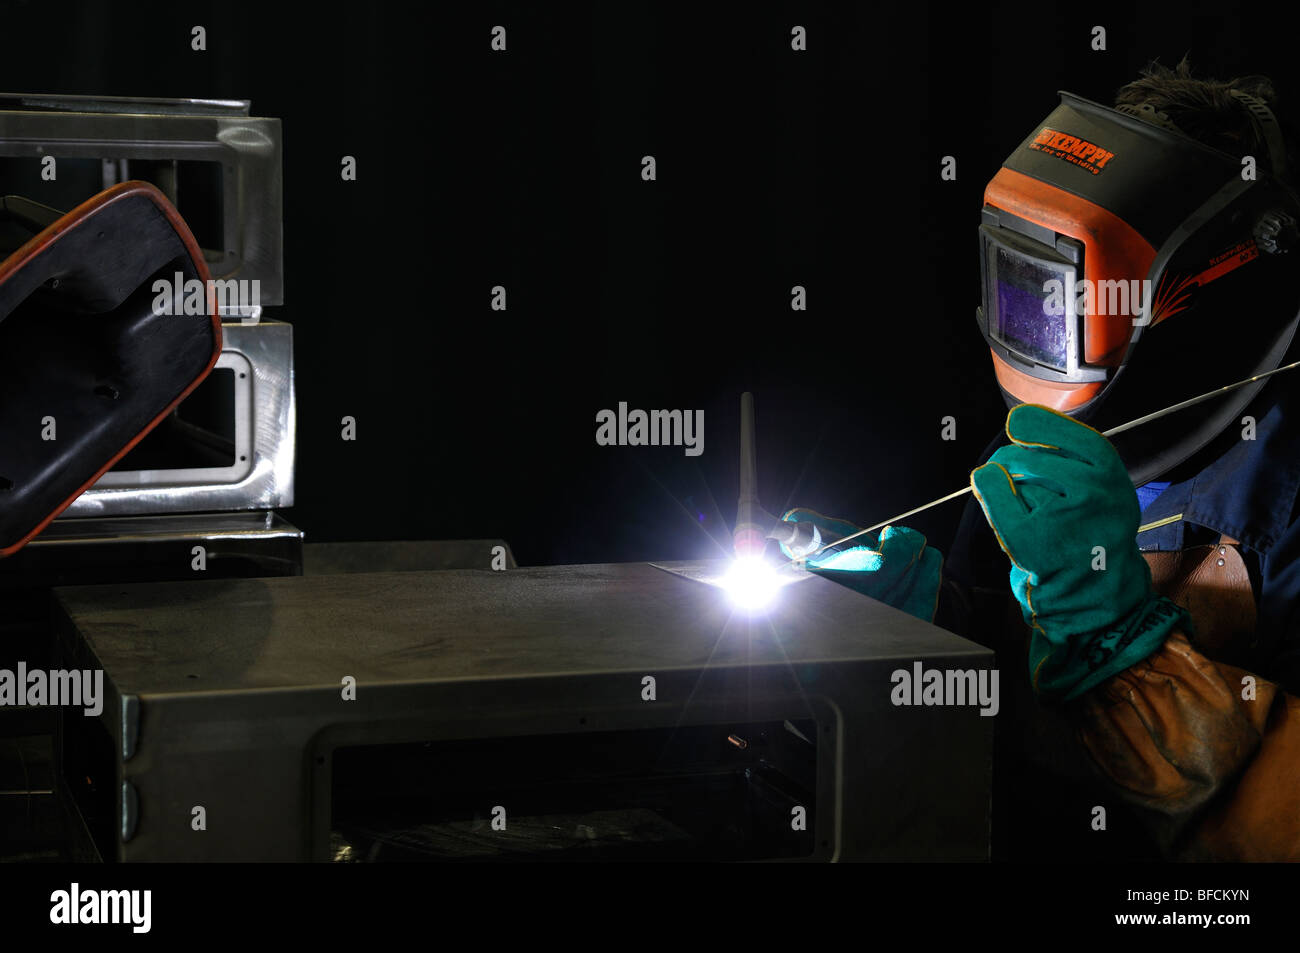 Welder TIG Welding Aluminum Cases at an Engineering Works - Stock Image